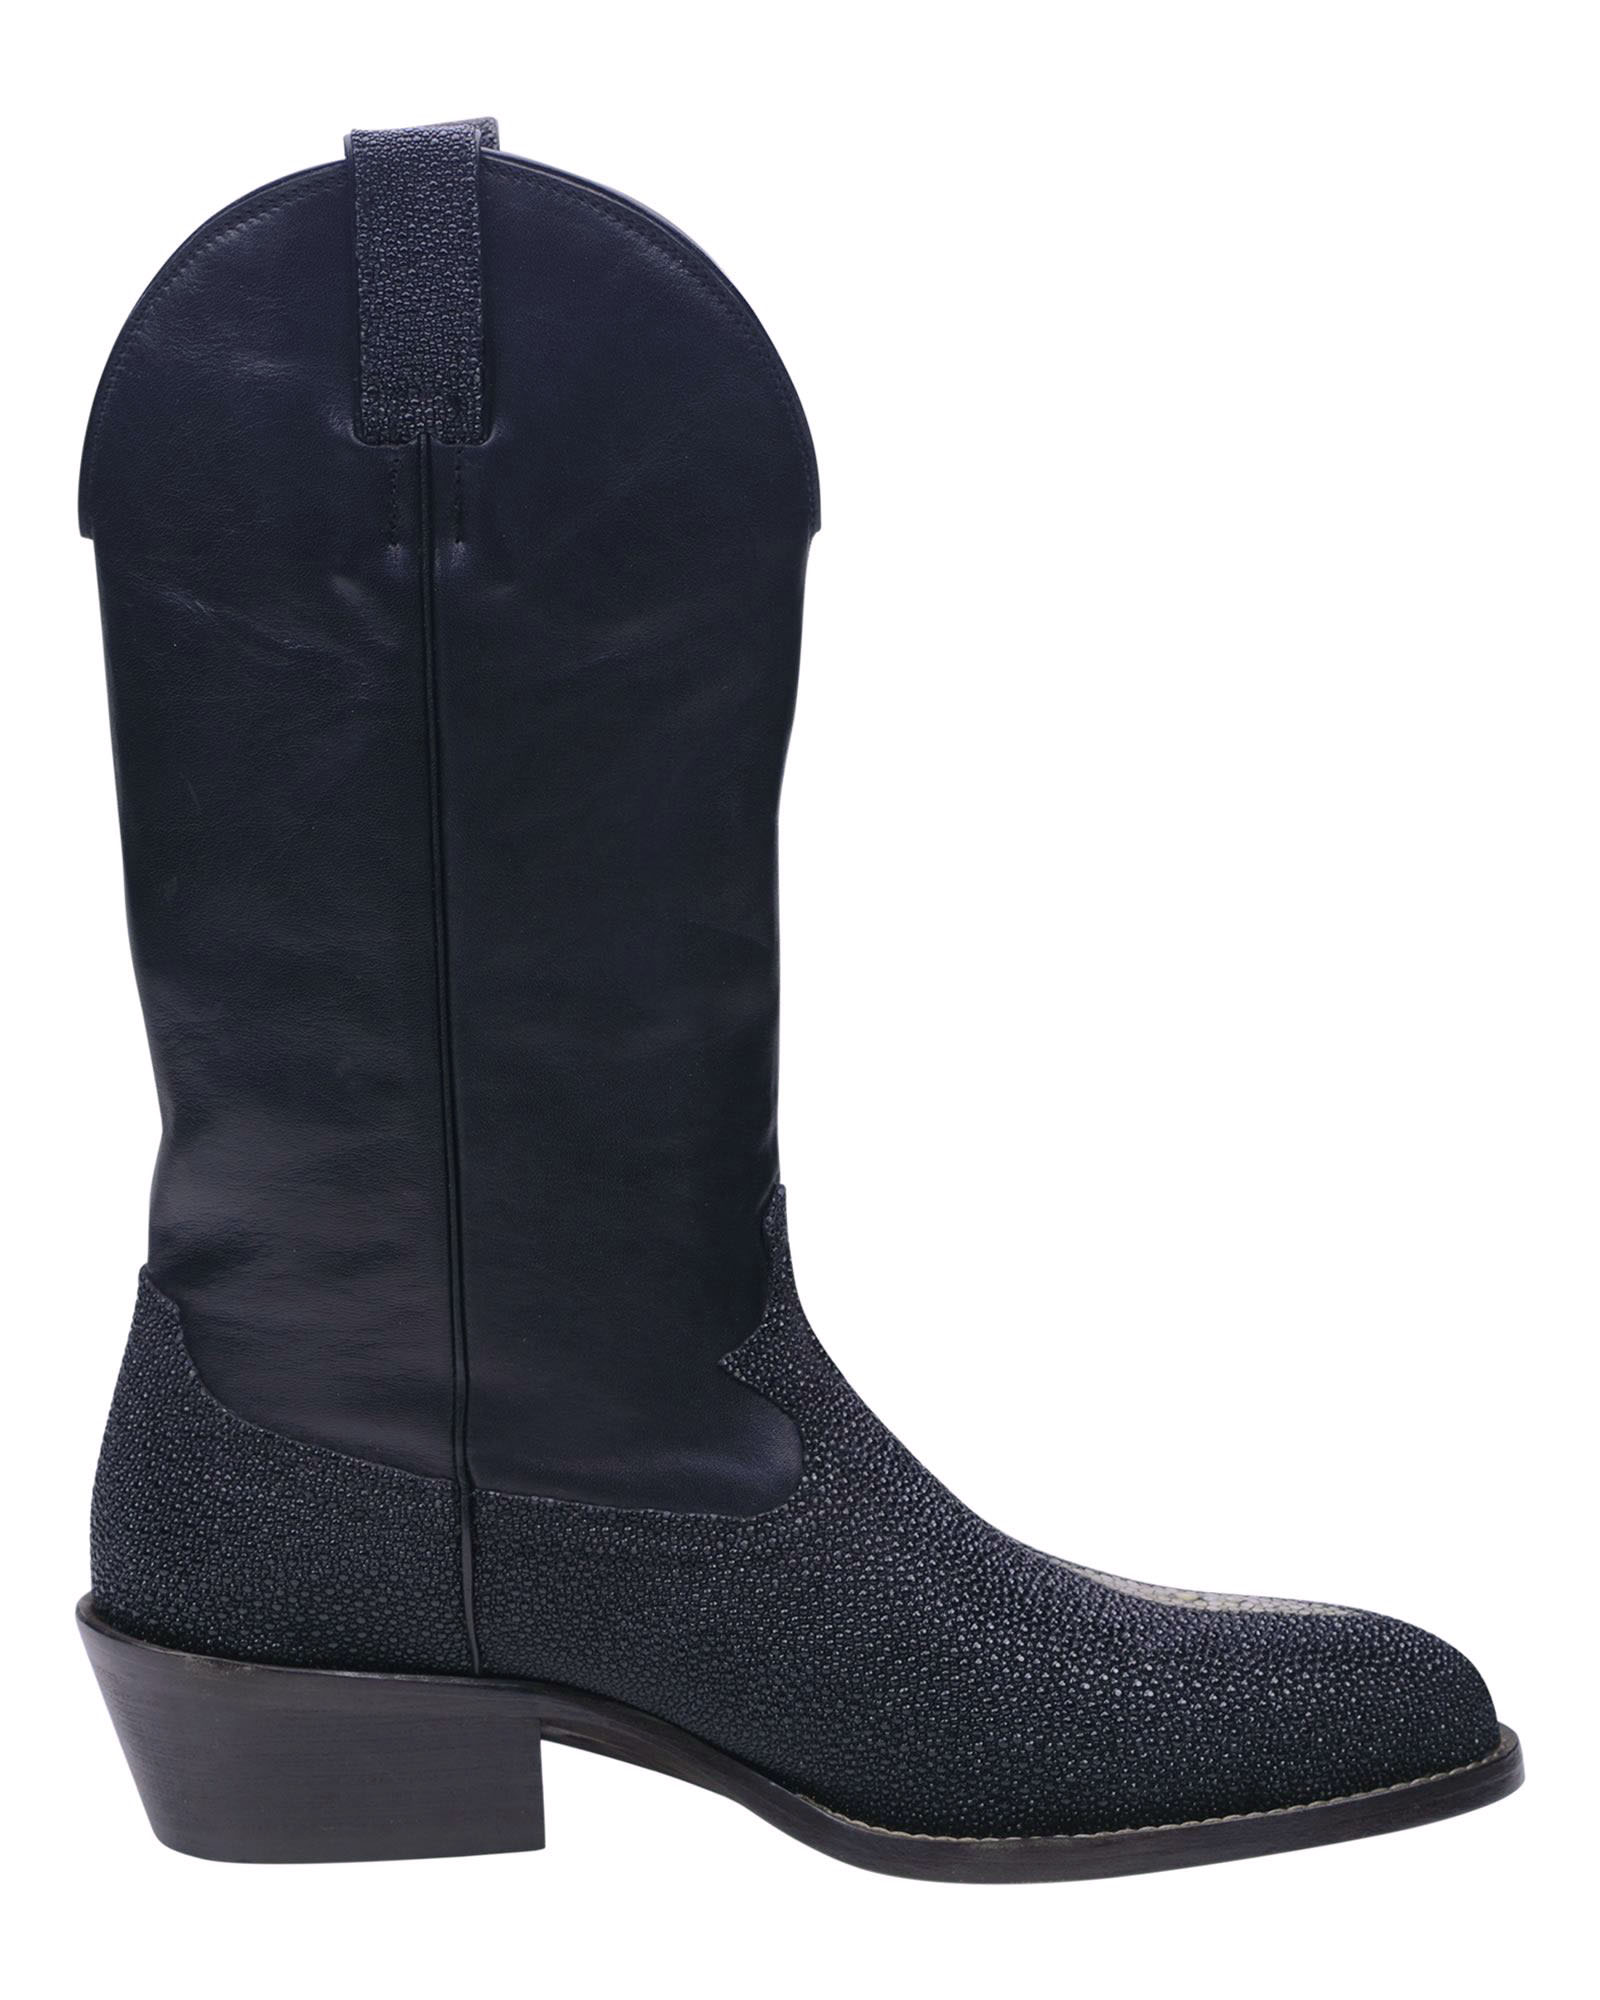 Angelo Galasso Signature Stingray Leather Boots